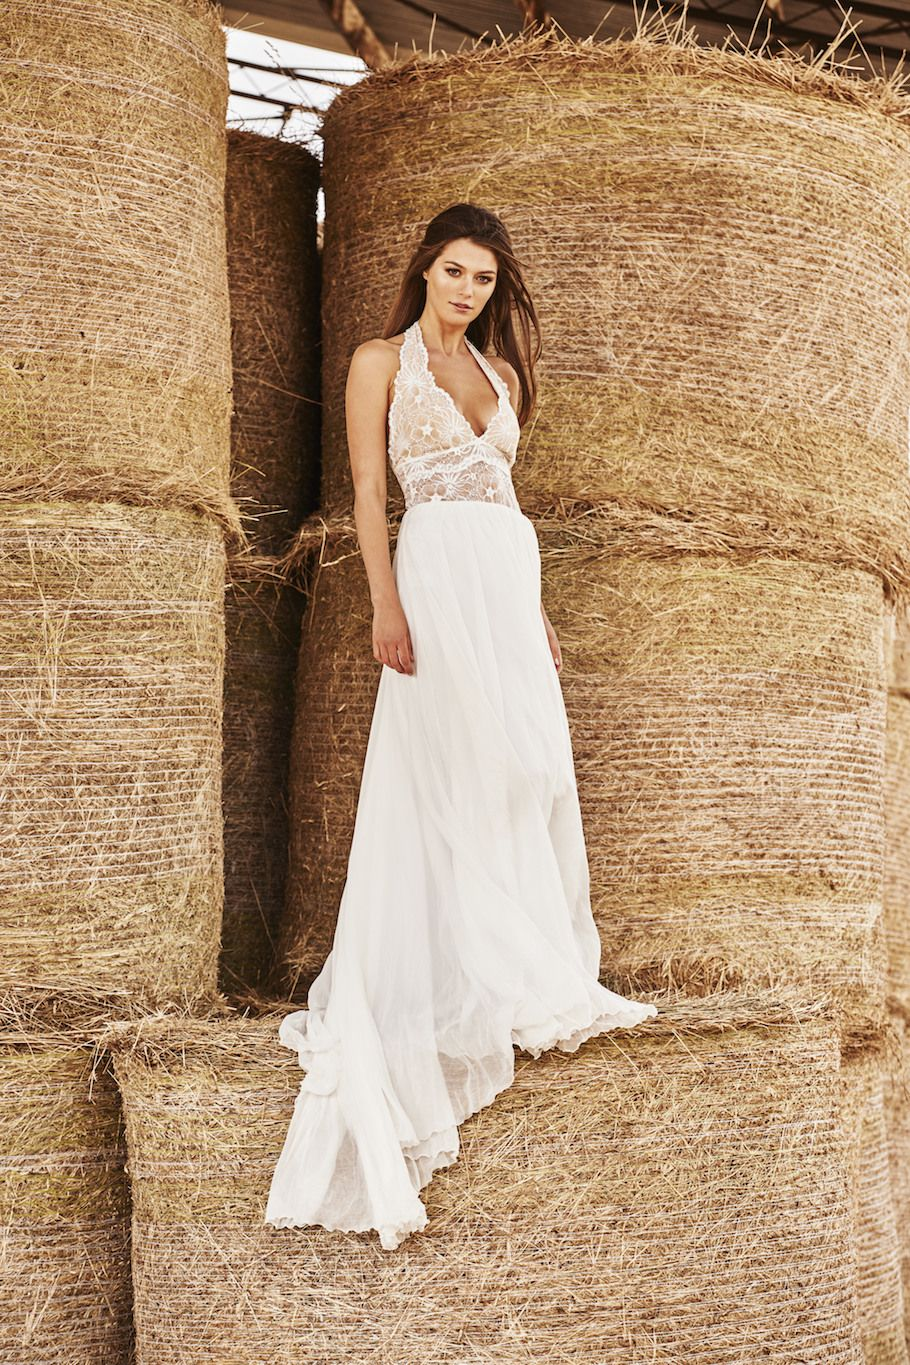 With A Unique French Lace Bodysuit And Flowing Silk Chiffon Skirt The Dakota Country Wedding DressesLace